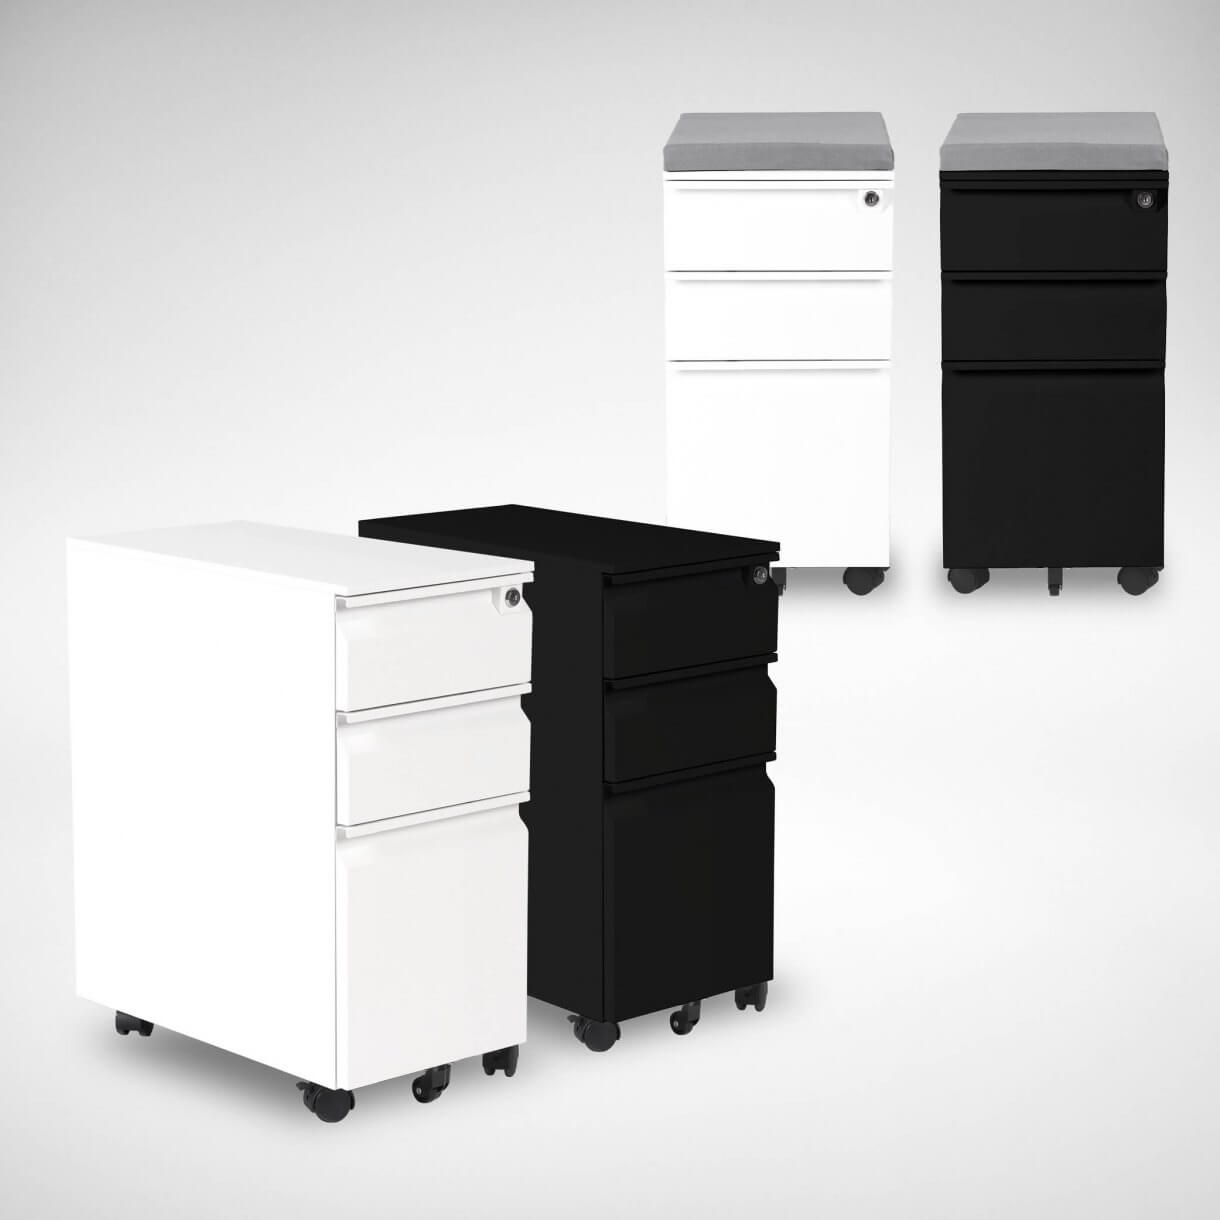 Equip Your Office with Mobile Pedestals for Easier Social Distancing - Comfort Furniture